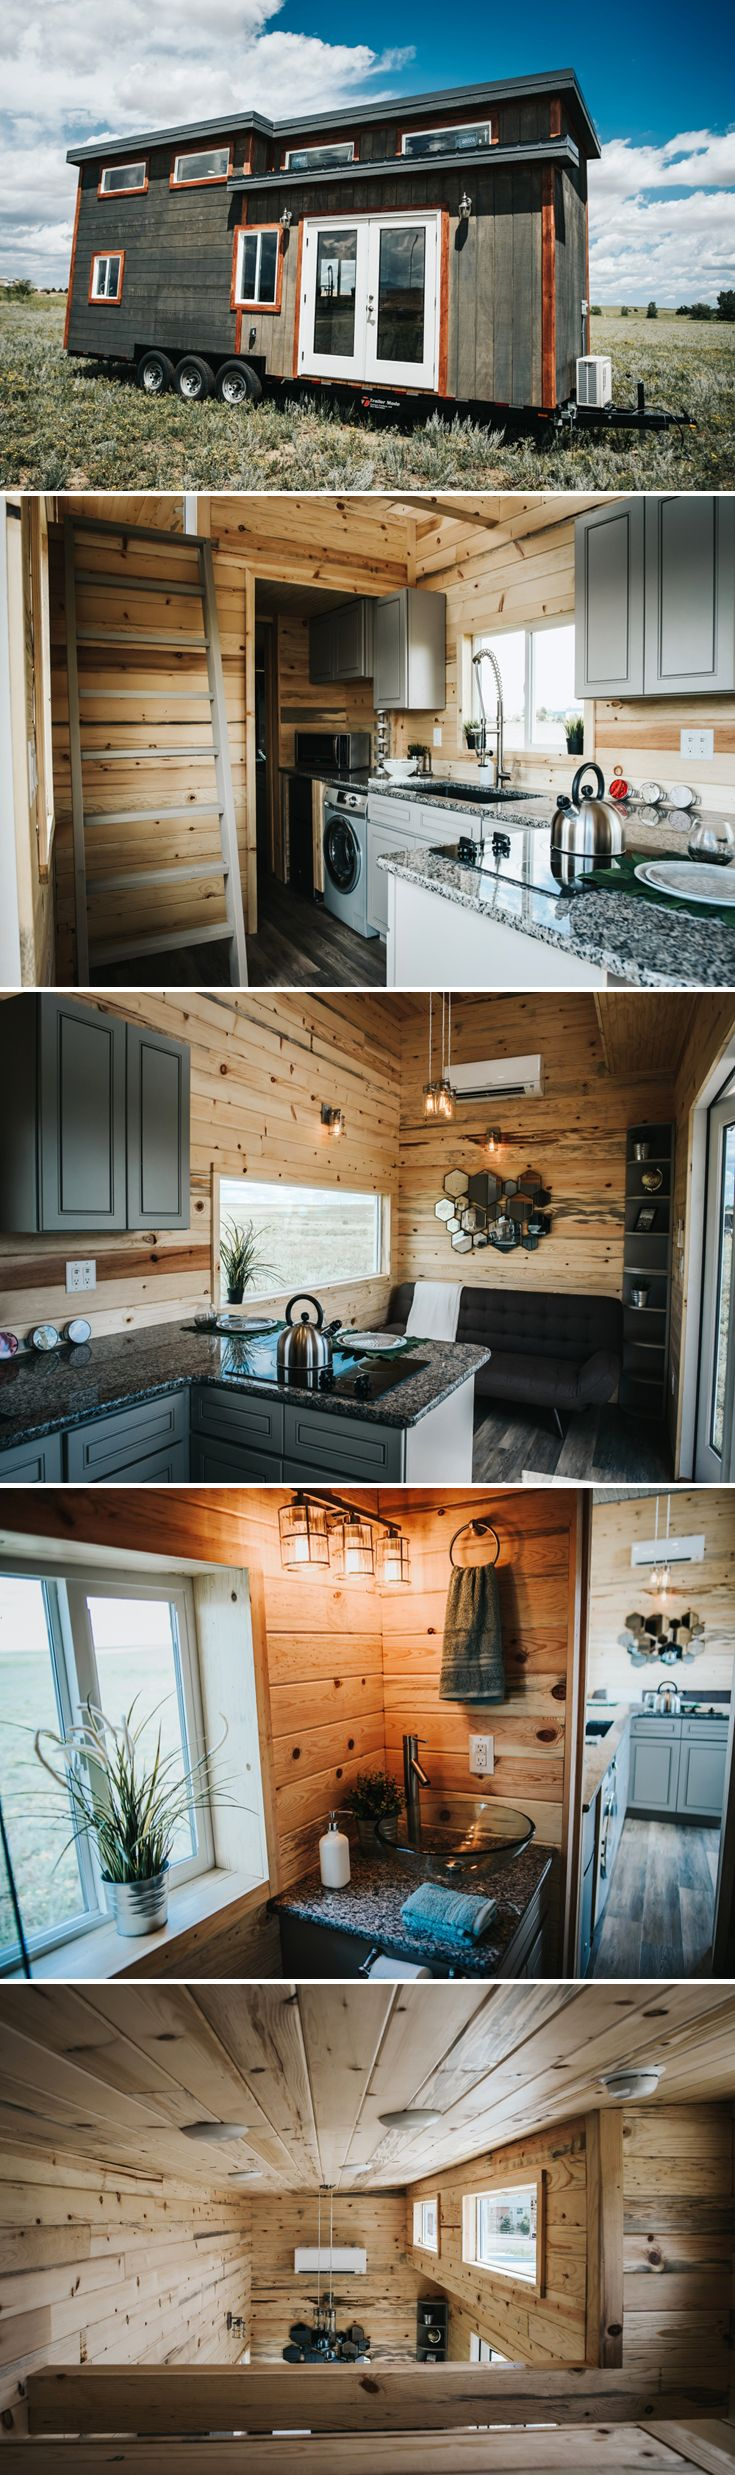 The 28' Four Eagle tiny house features weathered plank siding, natural wood interior, full light French doors, and a gourmet kitchen with upper cabinets.